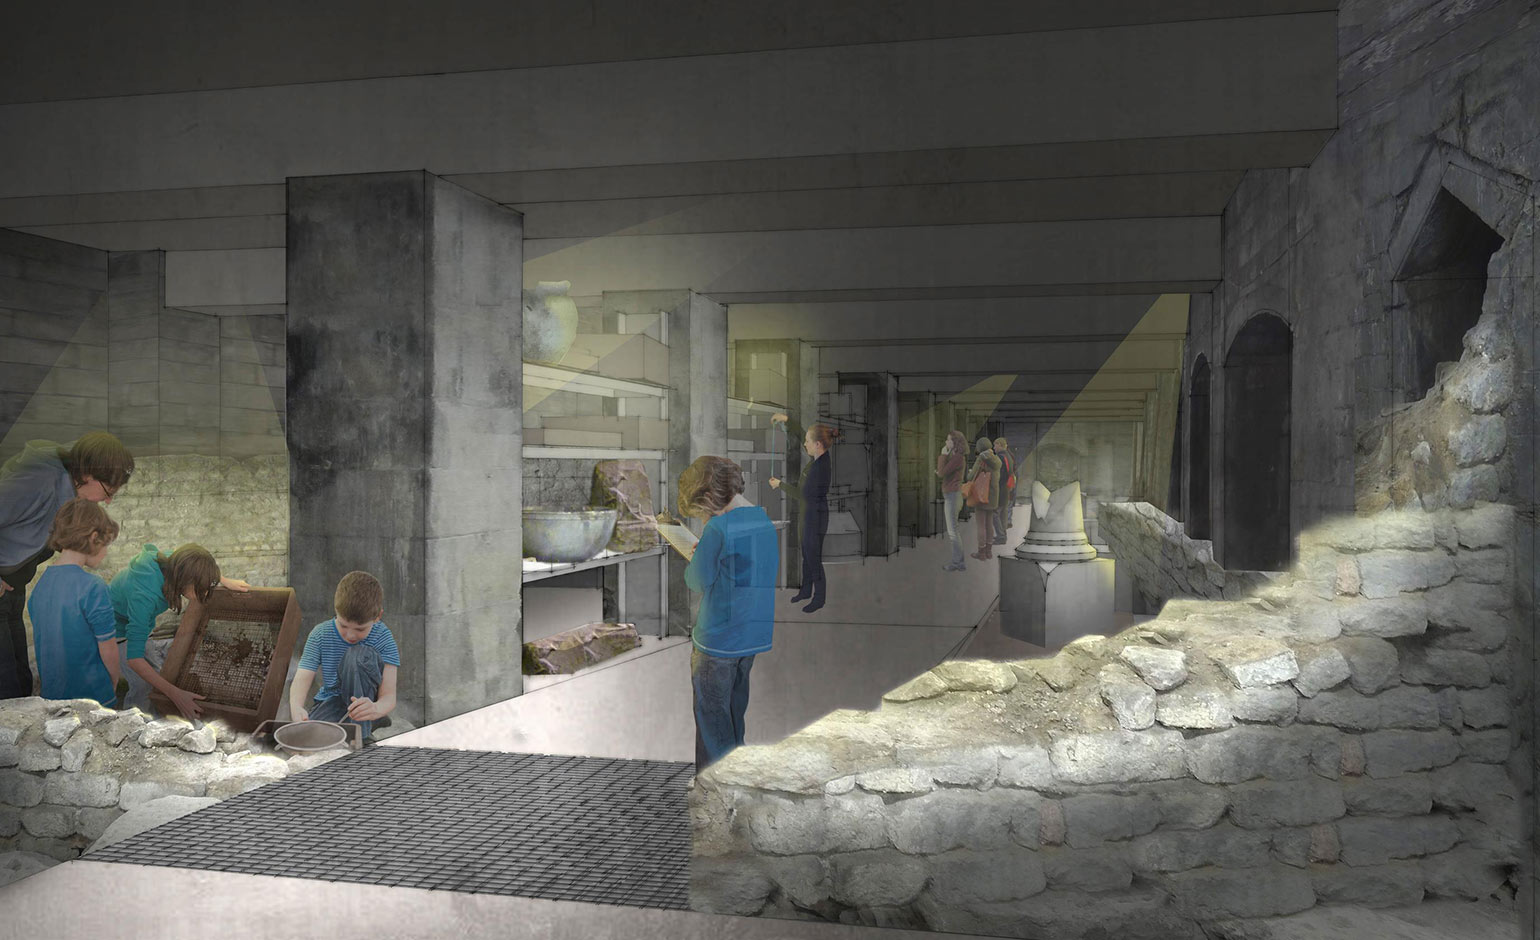 Bath's Archway Project awarded more than £350,000 in recovery funding